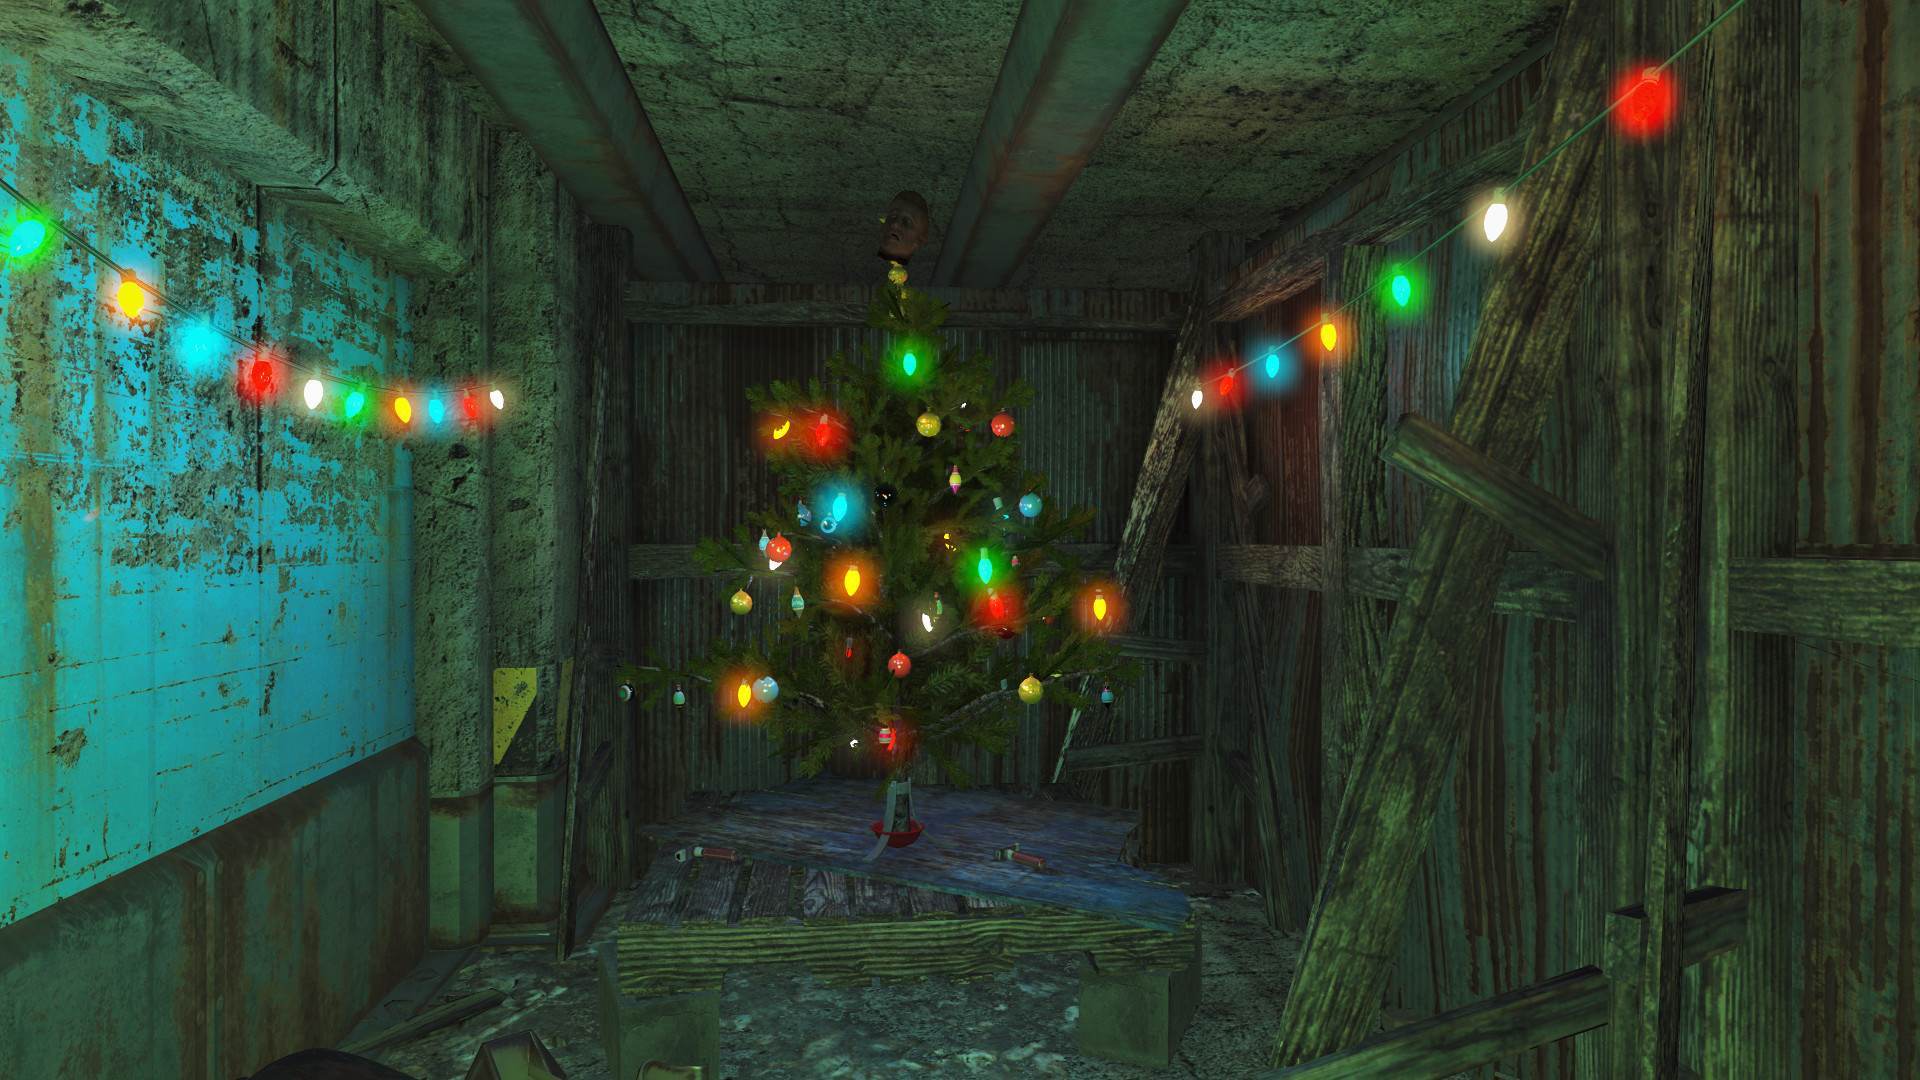 Merry Christmas from that maniac in the Milton parking garage #Fallout4  #gaming #Fallout